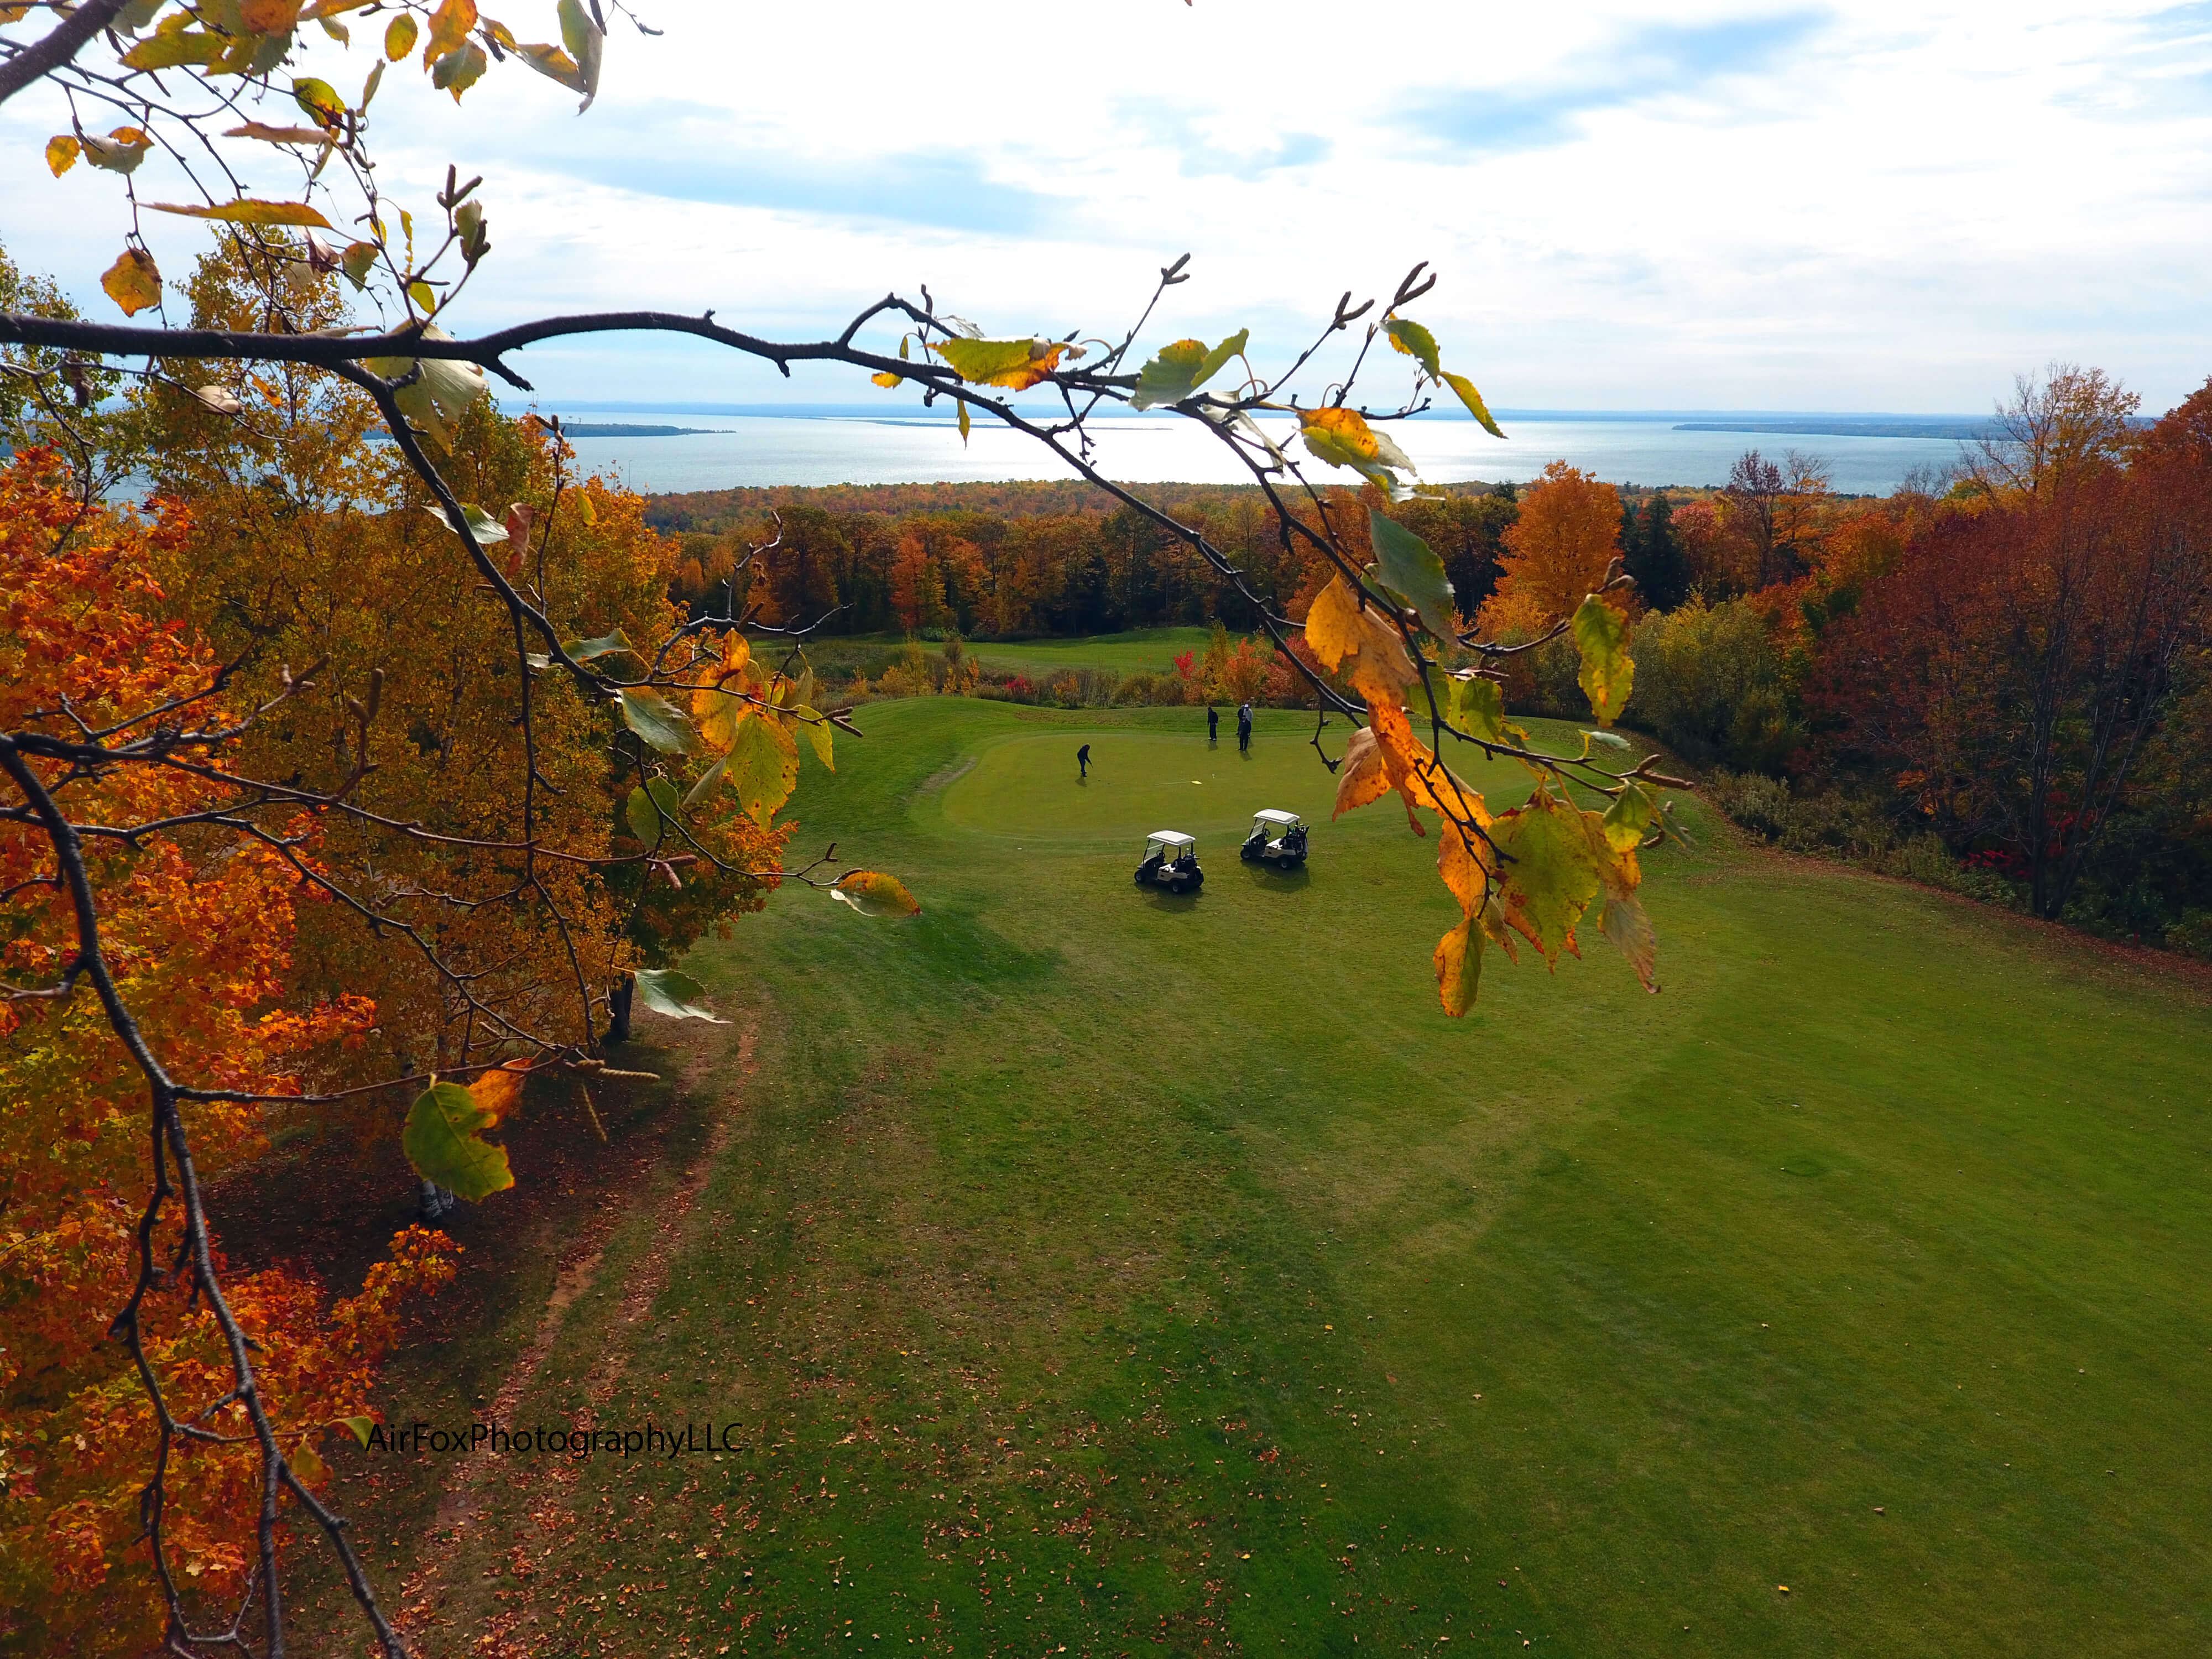 Golf Course with Lake Superior in Background